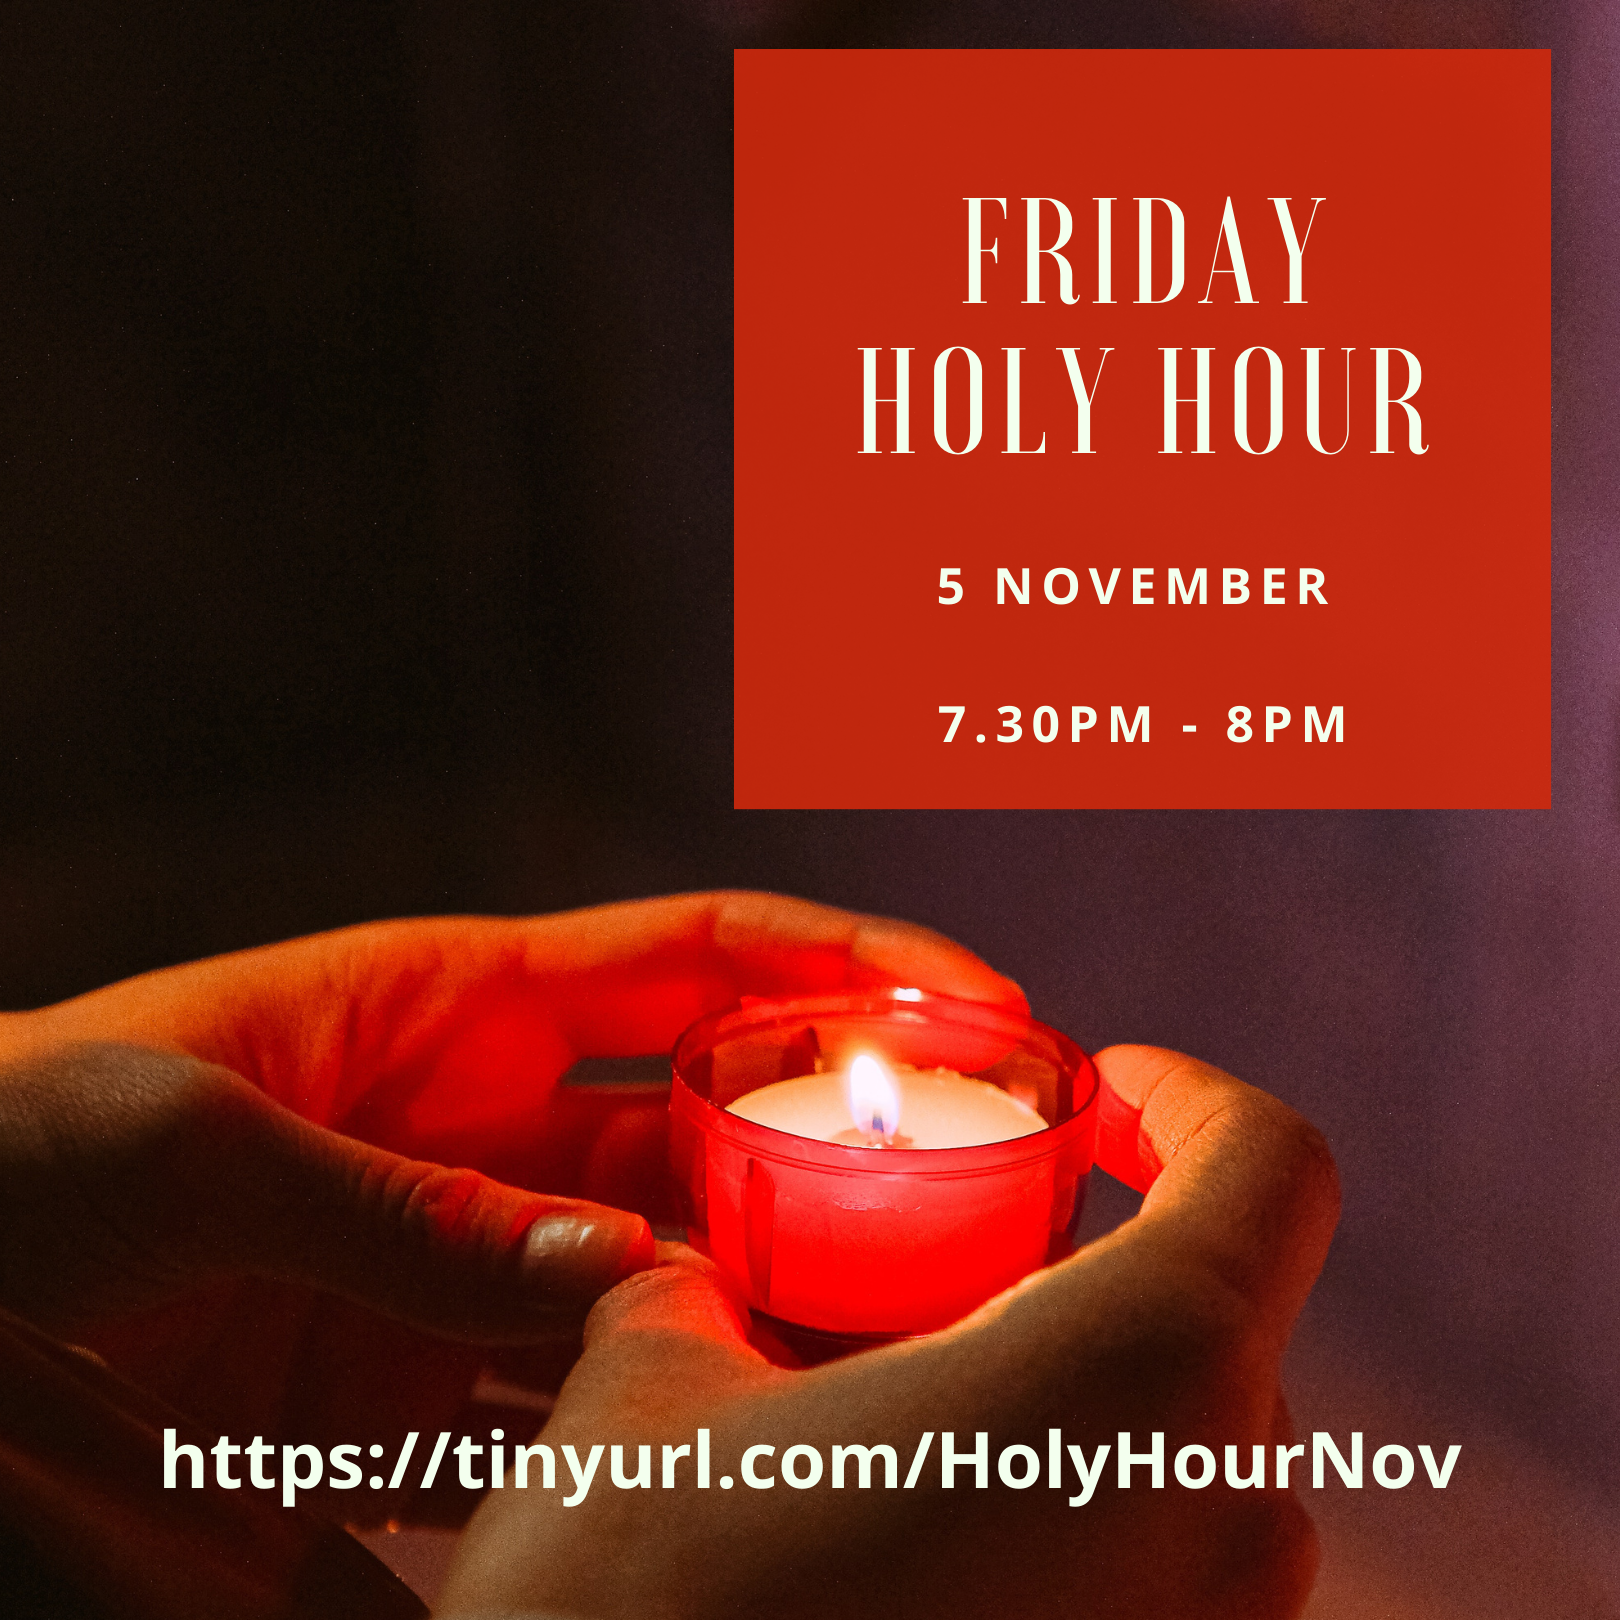 Friday Holy Hour